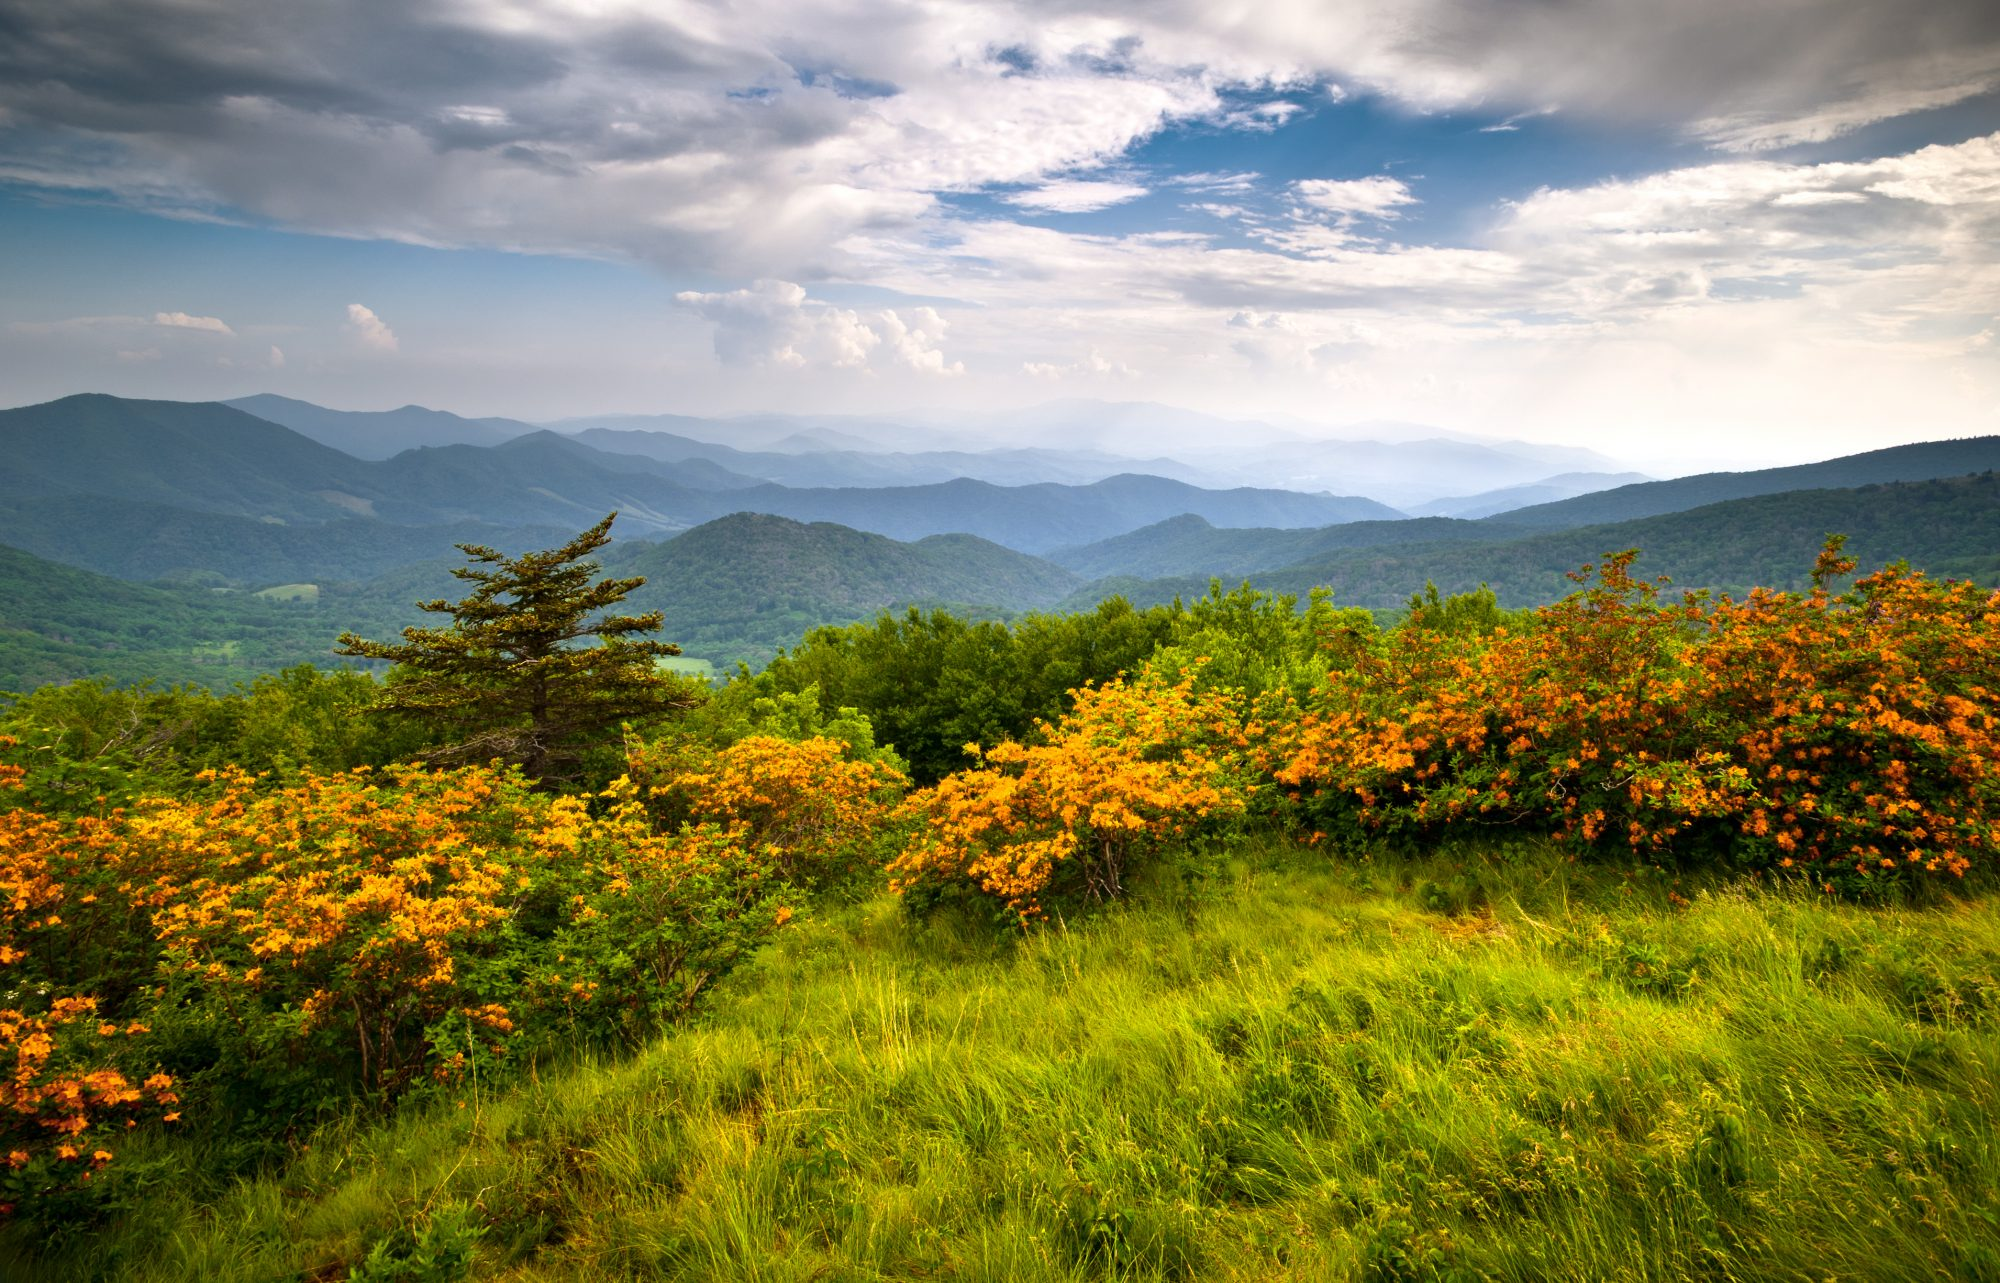 4. Blue Ridge, Georgia